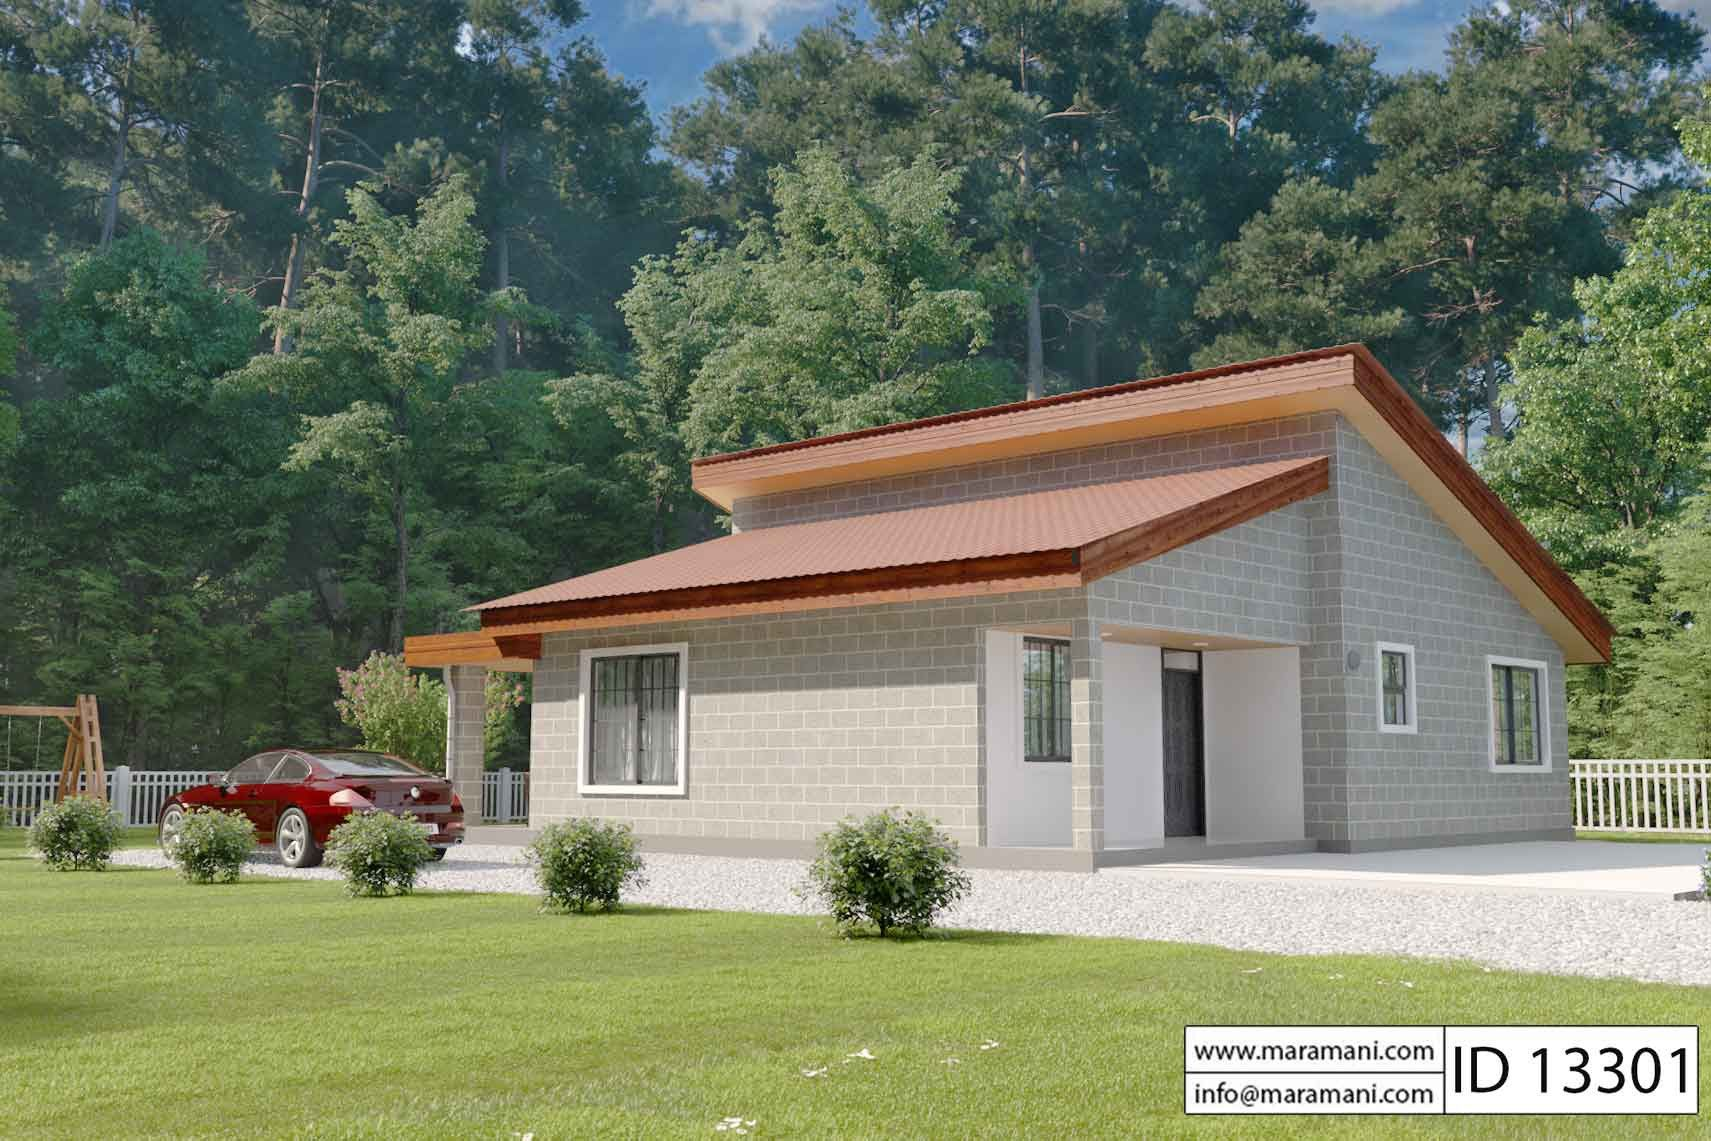 3 Bedroom House Plan Id 13301 House Design Pictures Dream House Plans House Plan Gallery